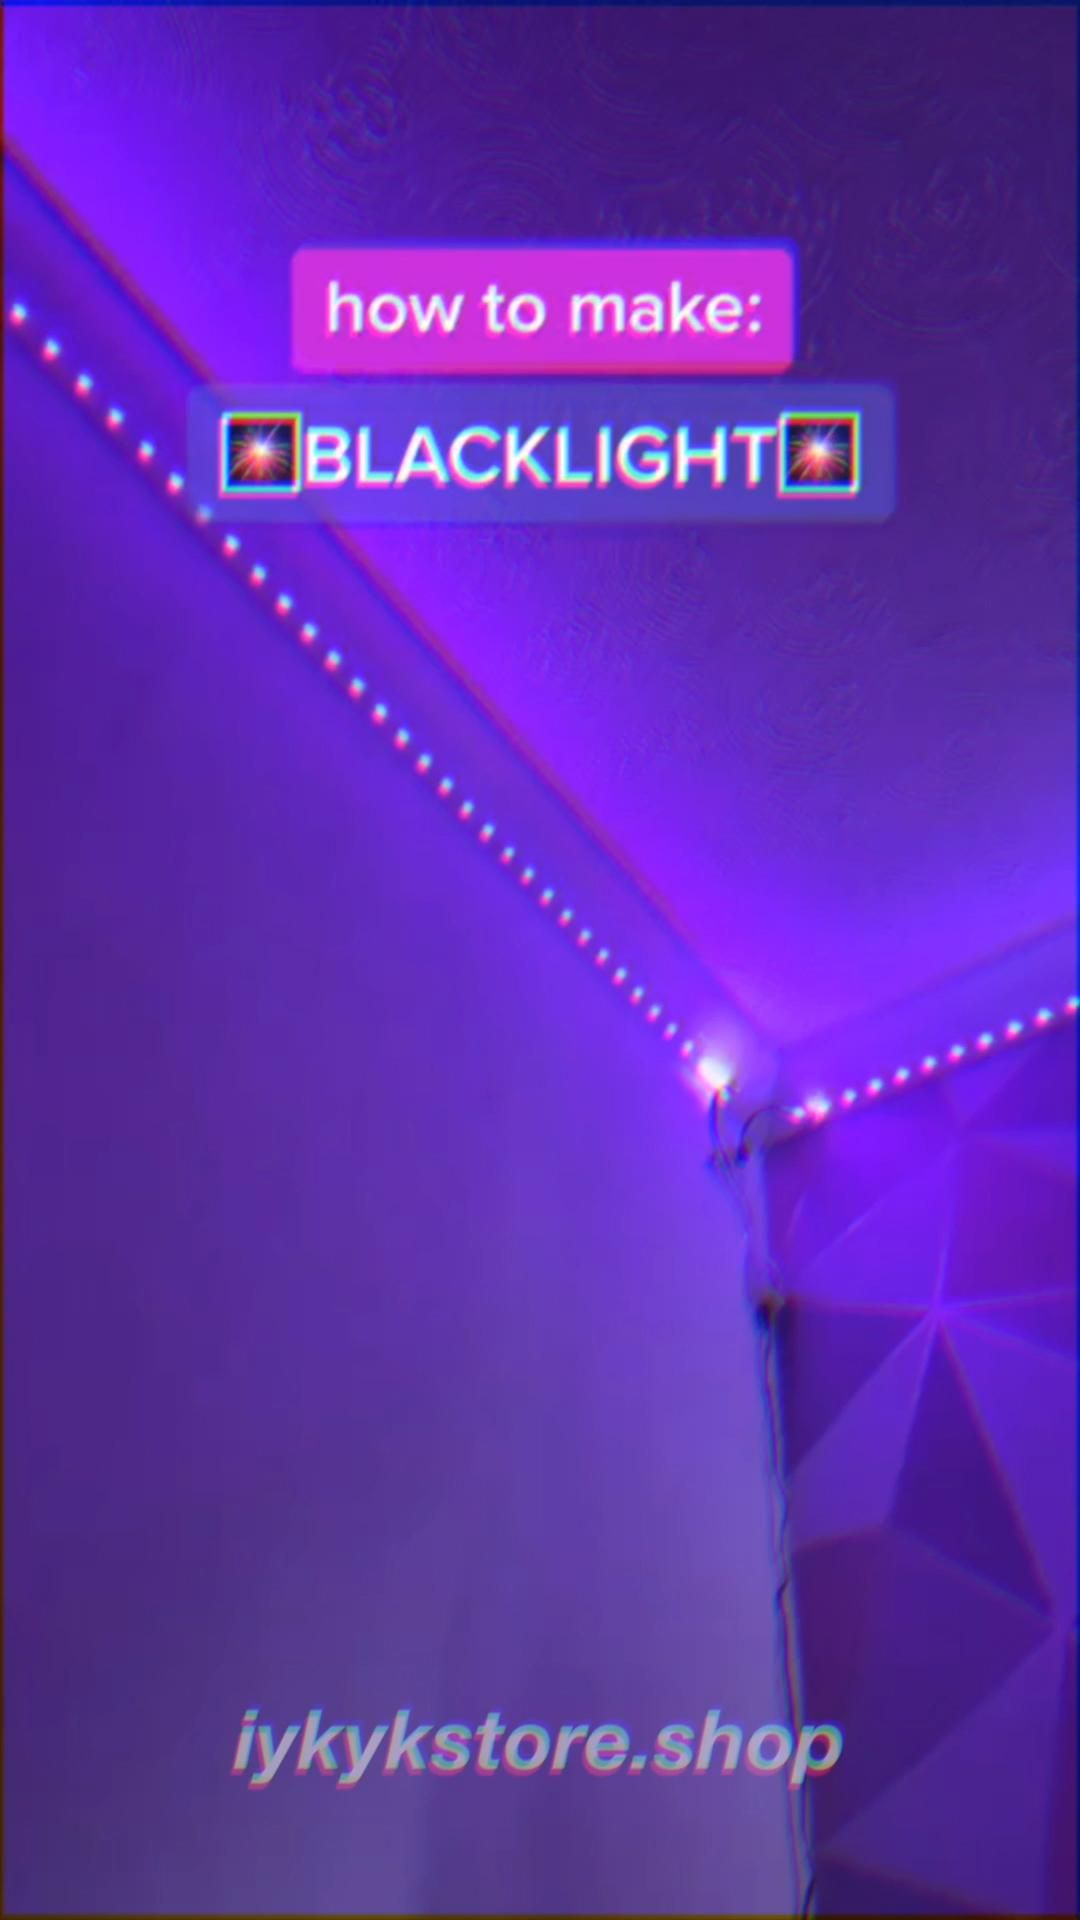 Led Lights Led Lights Has Created A Short Video On Tiktok With Music Supalonely Feat Gus Dapperton Tiffany Blue I M Planning On Doing A Q A In